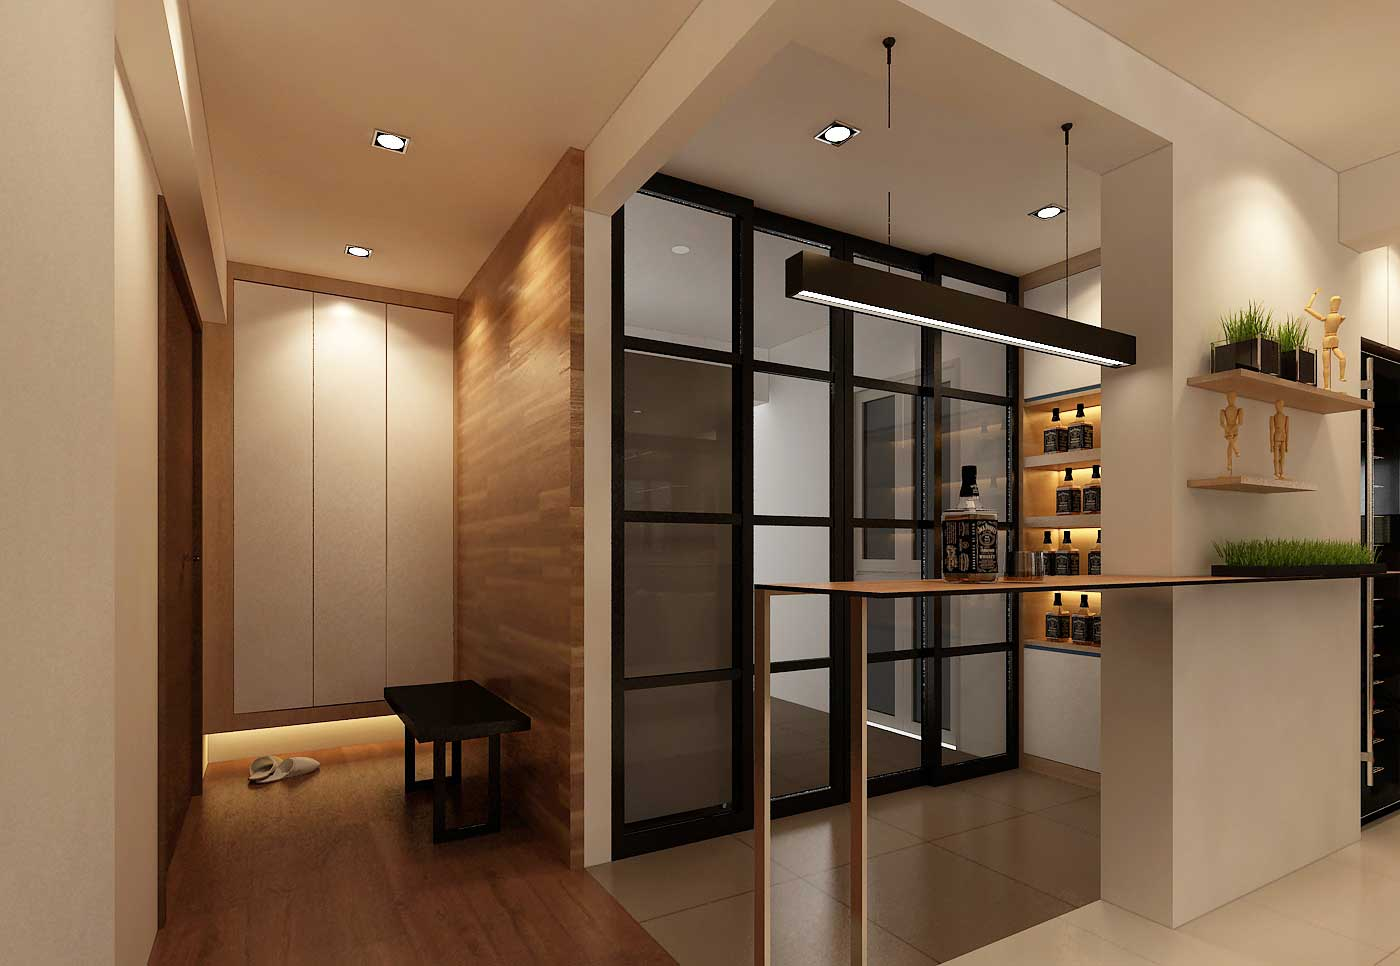 Hdb Interior Design Singapore Top Hdb Renovation Contractor